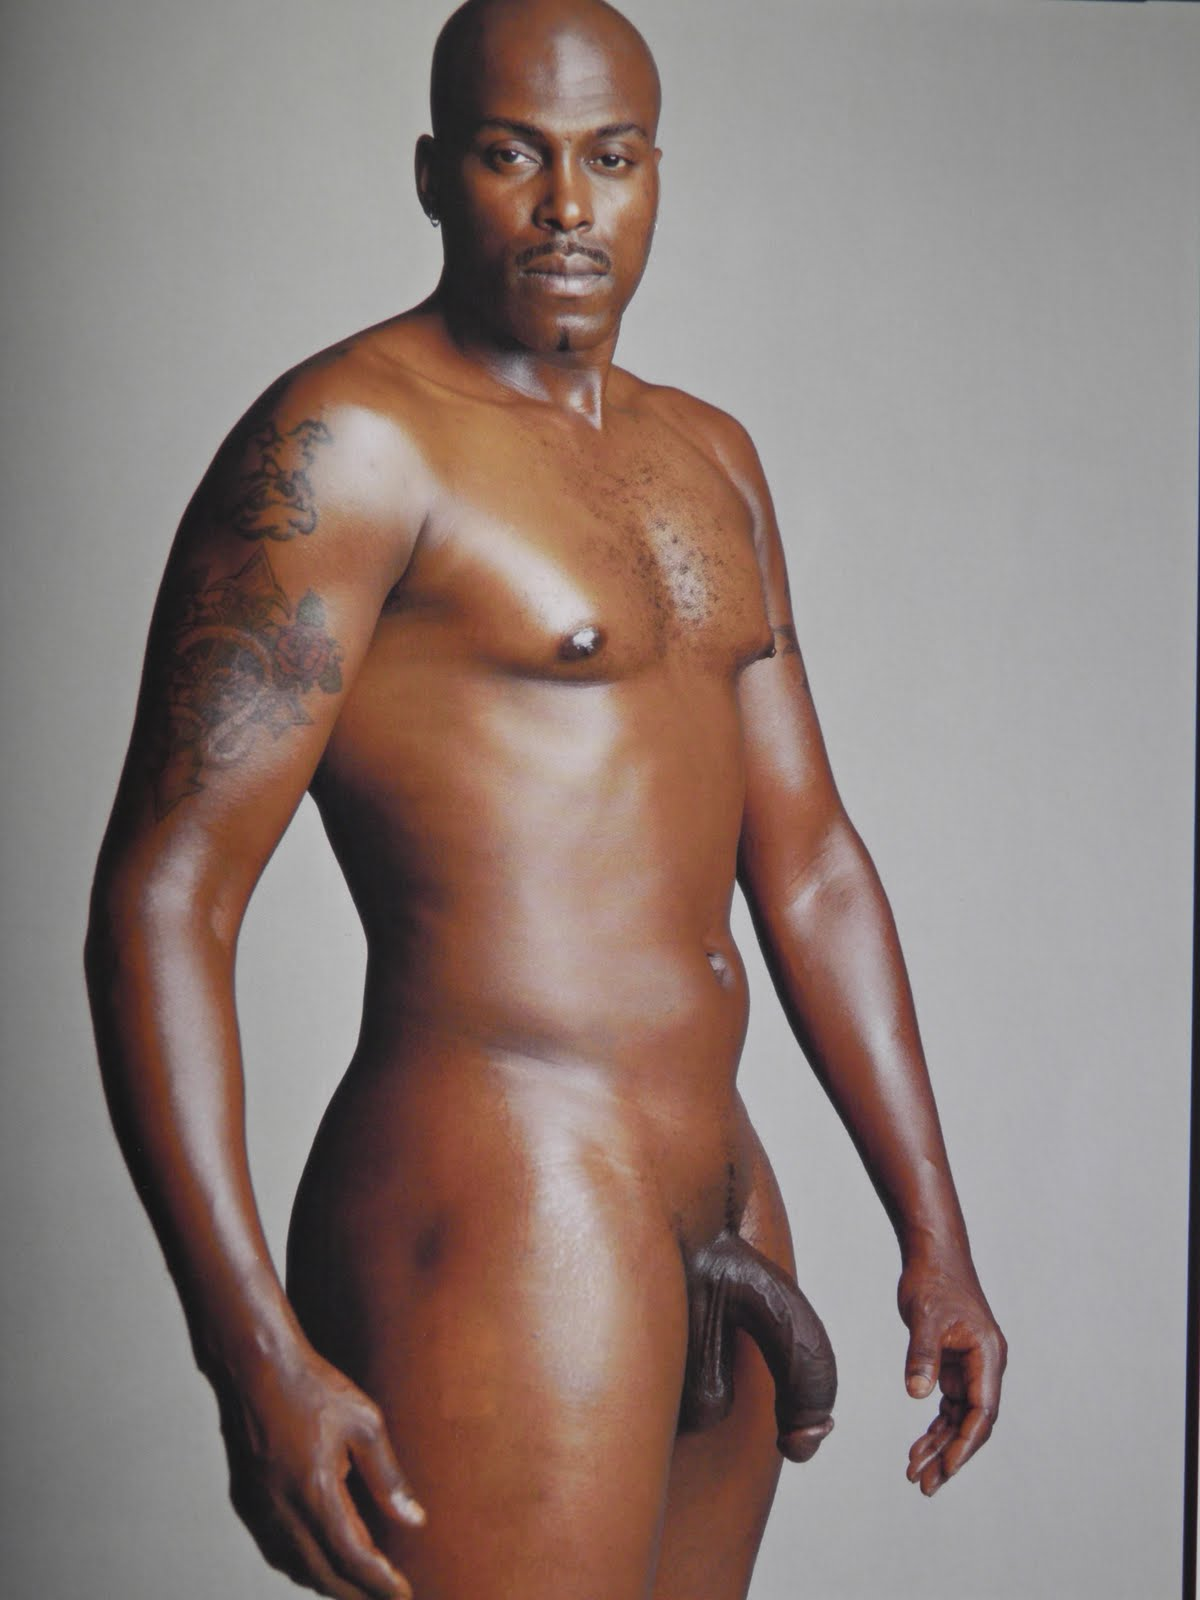 male celebrity nude photograph